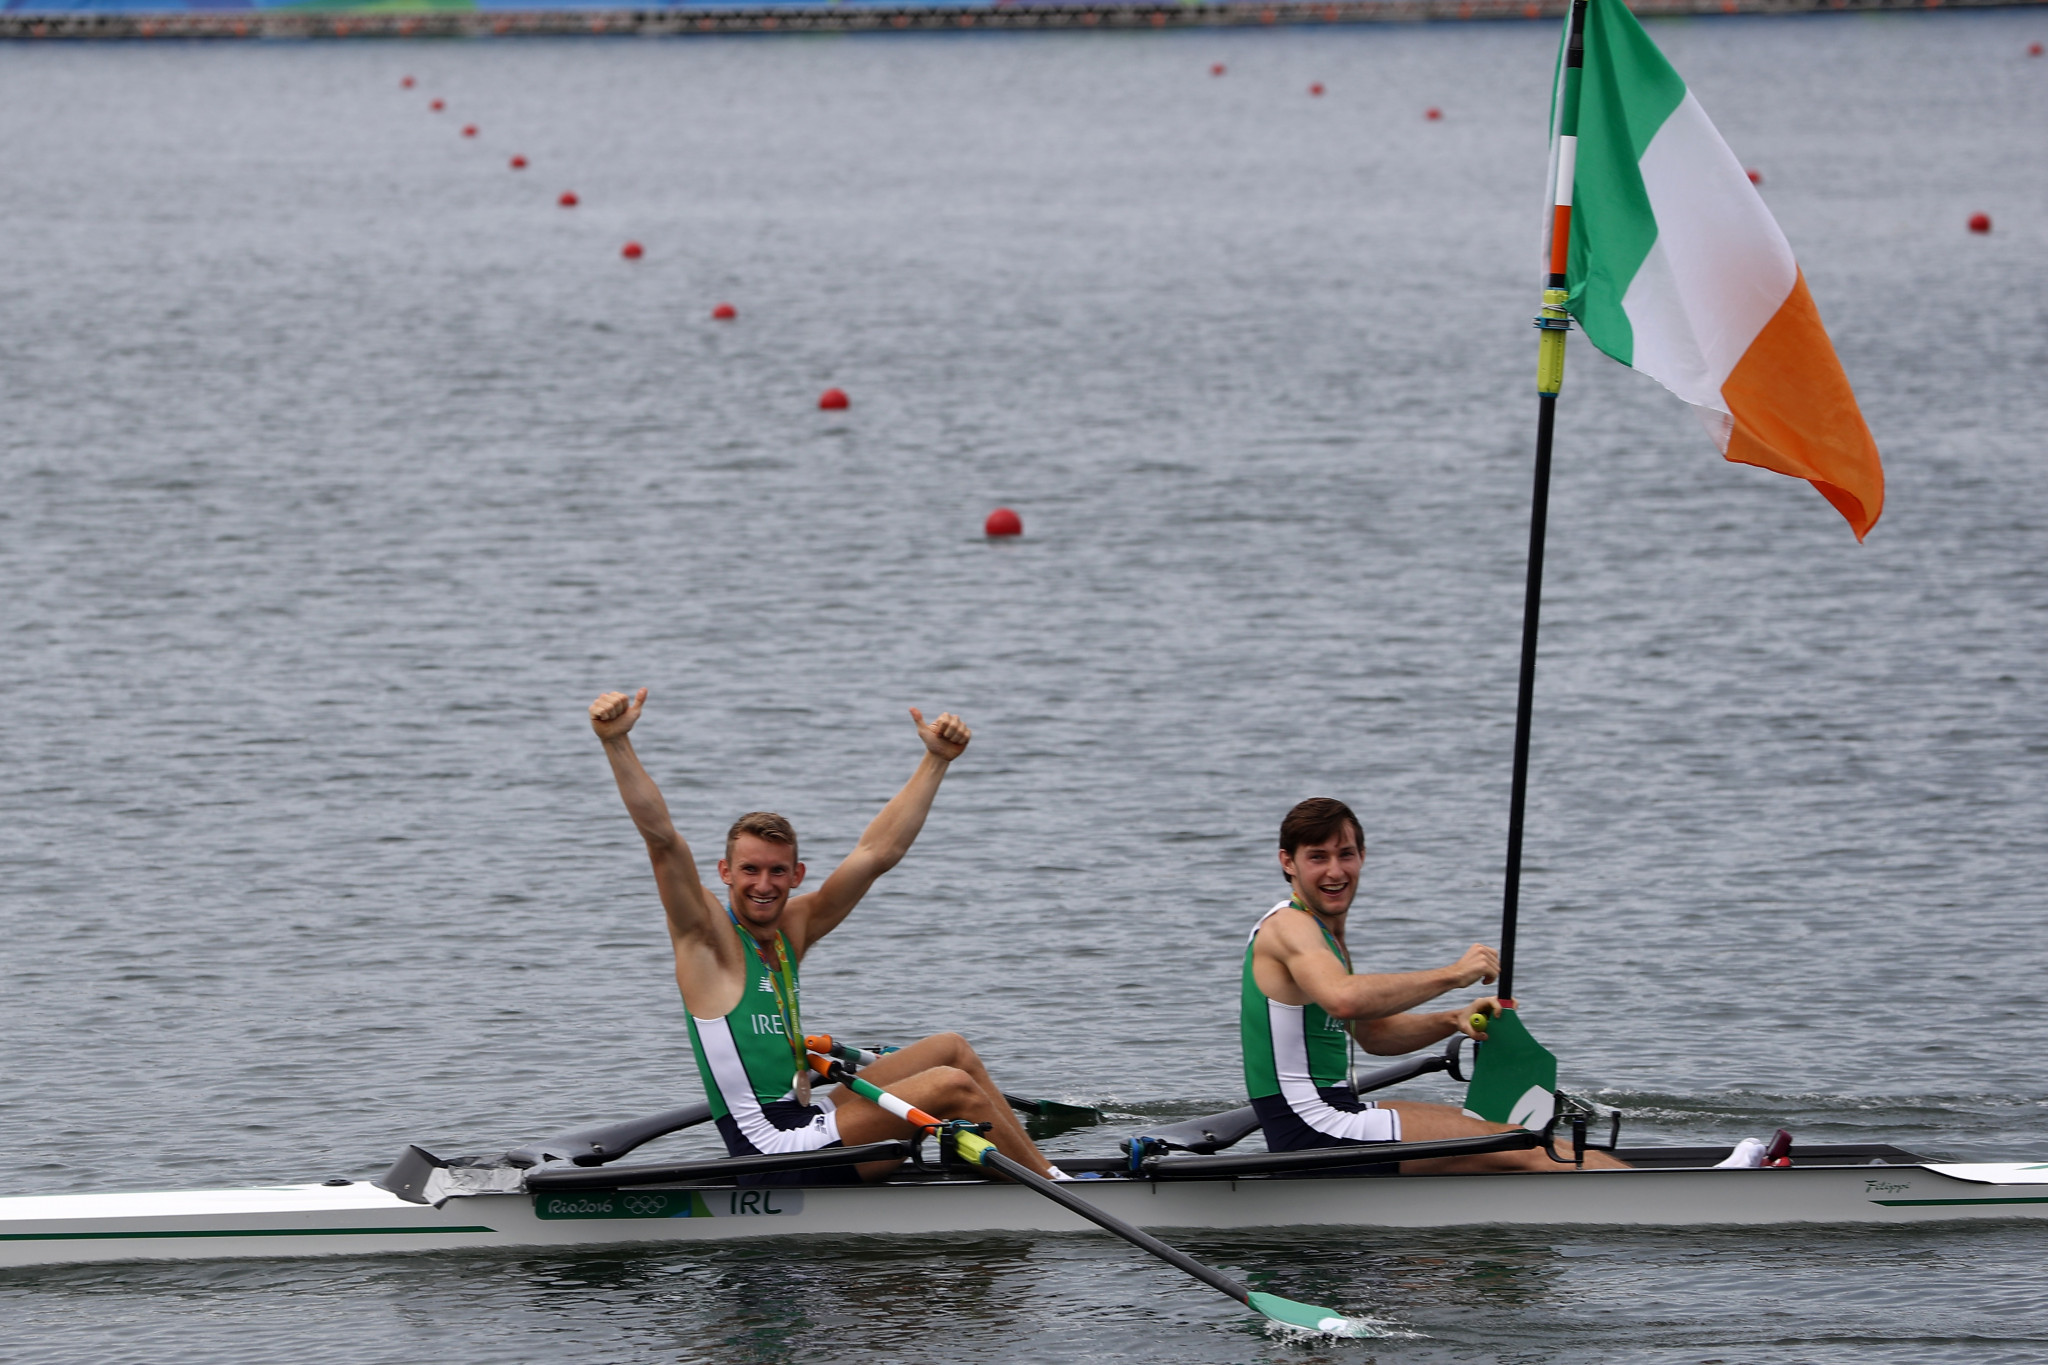 Gary and Paul O'Donovan won one of Ireland's two Olympic medals at Rio 2016 ©Getty Images